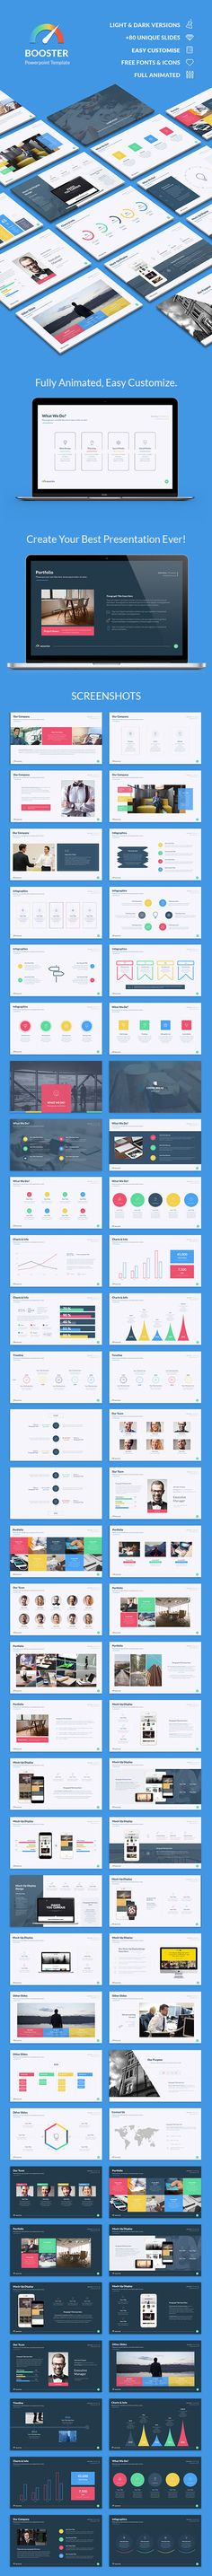 Booster Powerpoint Template — Powerpoint PPT #education #creative powerpoint • Download ➝ https://graphicriver.net/item/booster-powerpoint-template/18866926?ref=pxcr